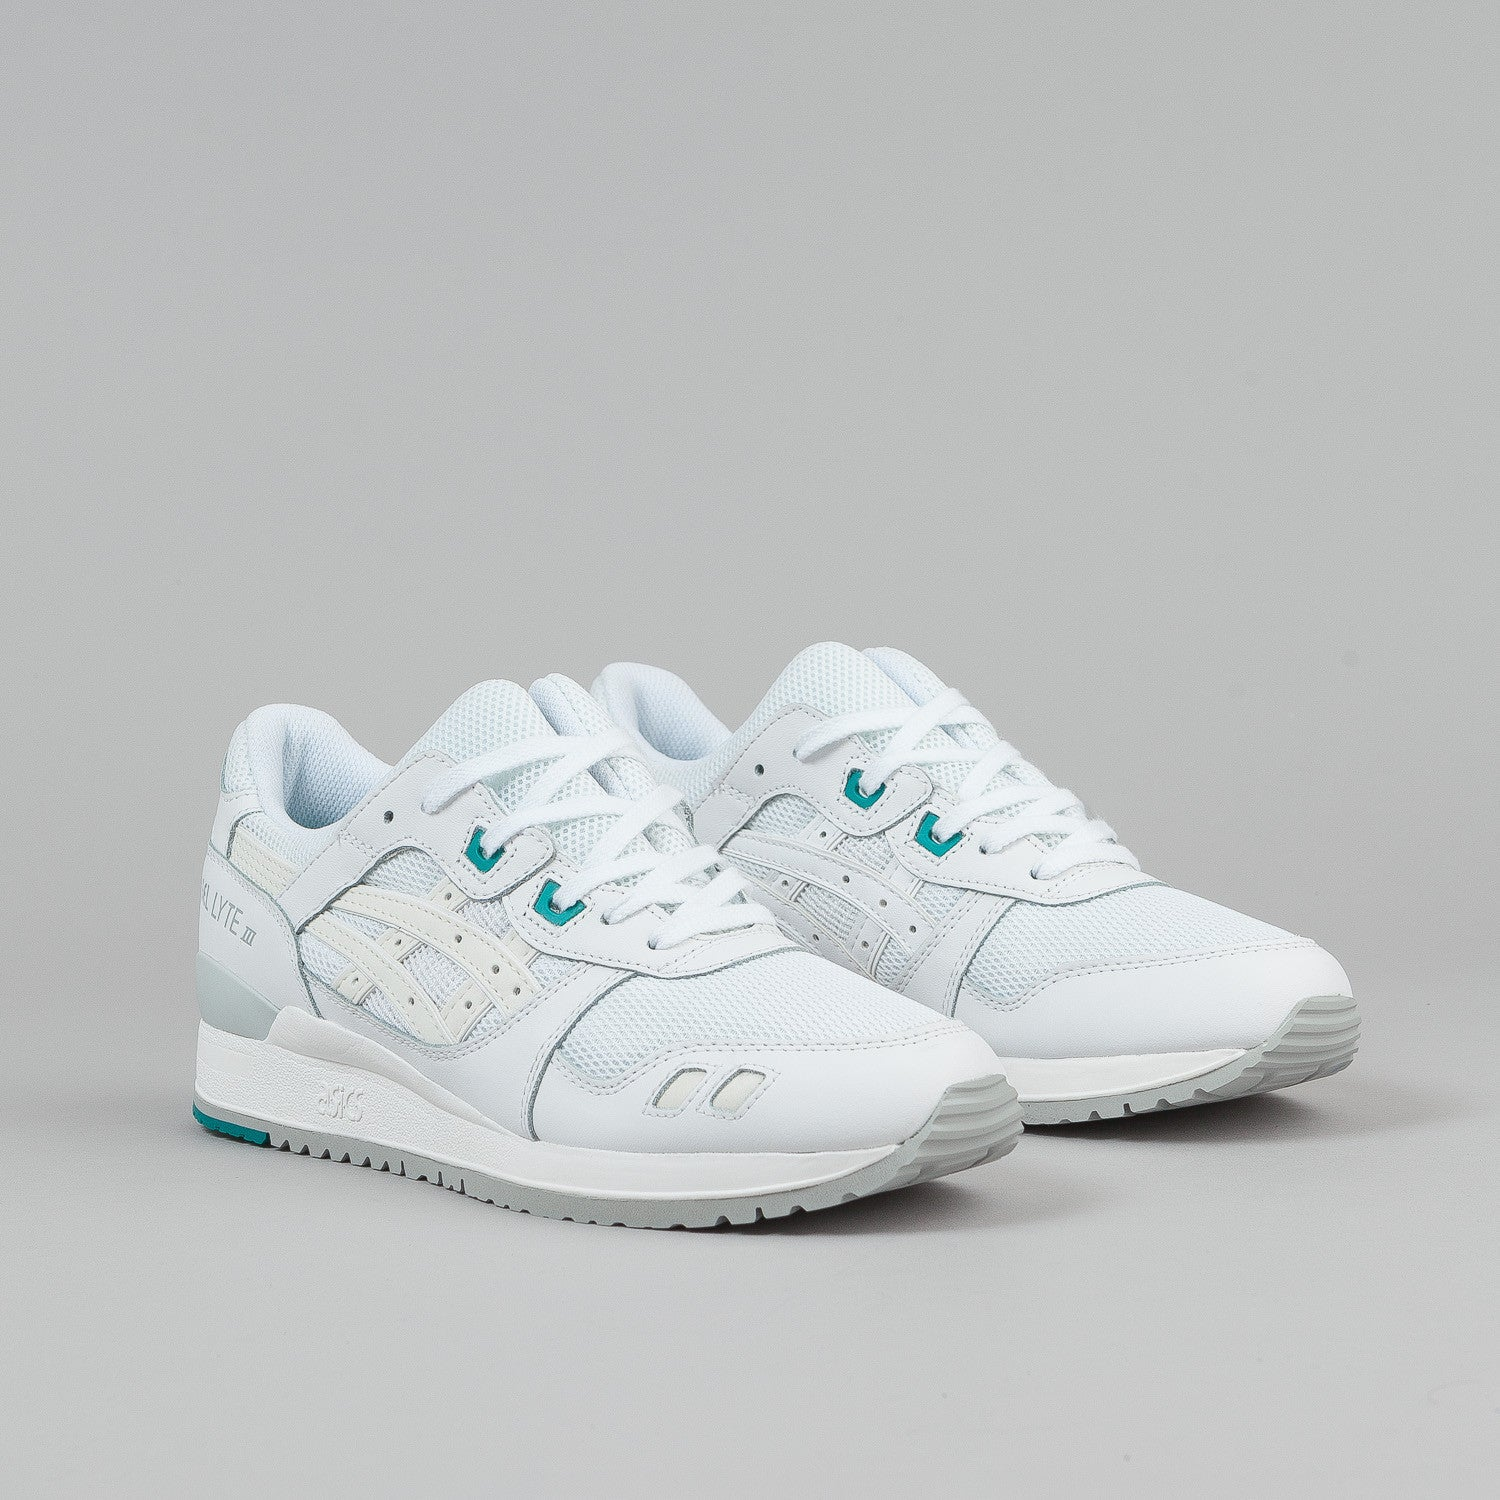 Asics Gel Lyte III Shoes 'Summer Whites'